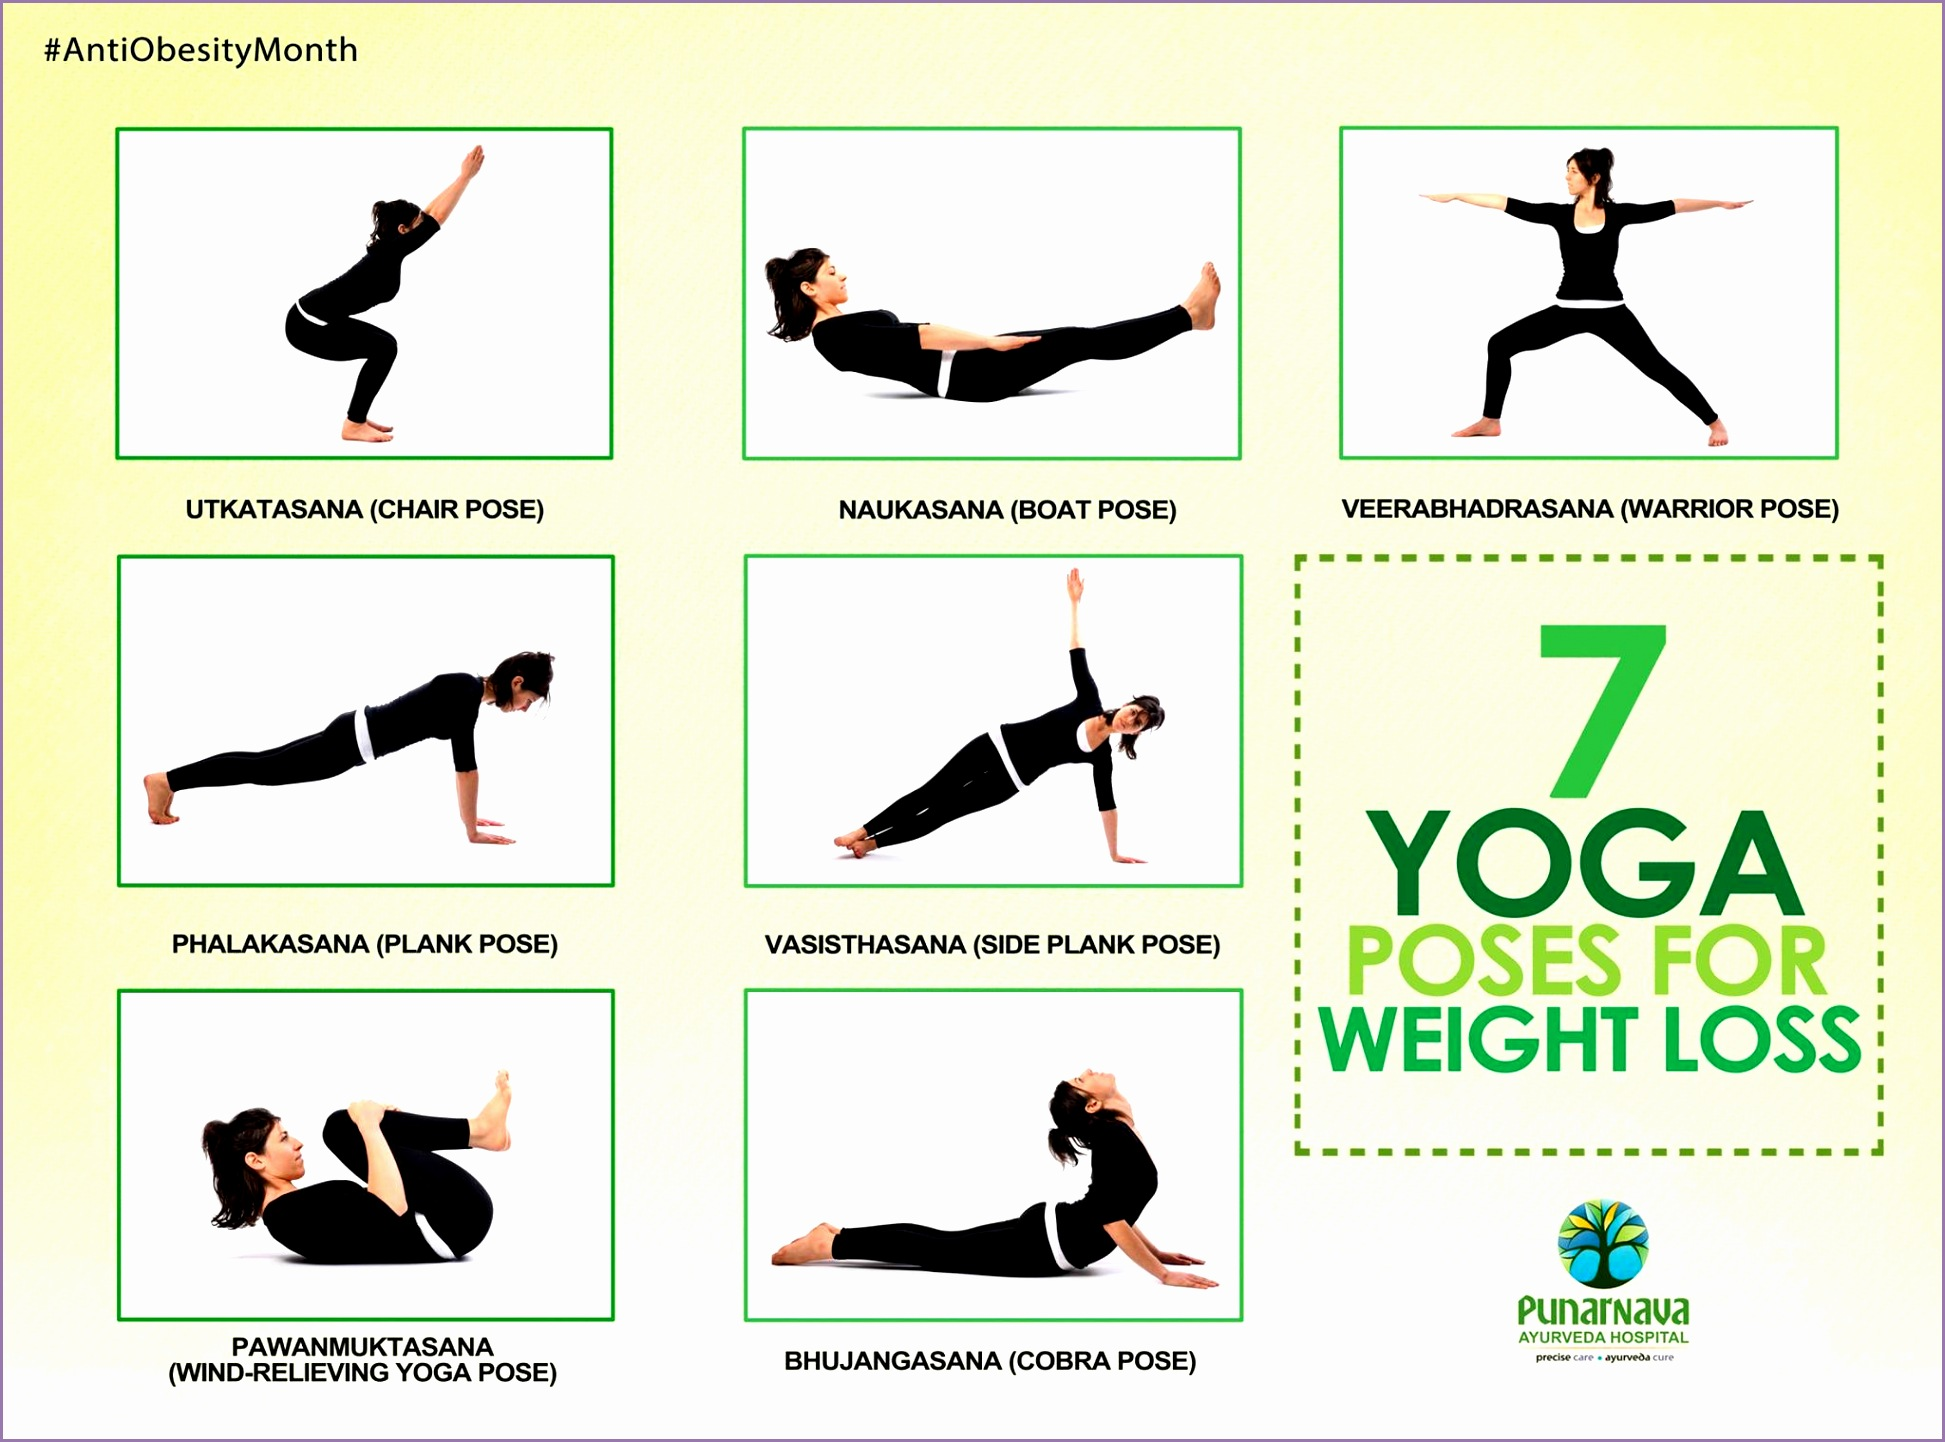 bikram yoga poses pdf